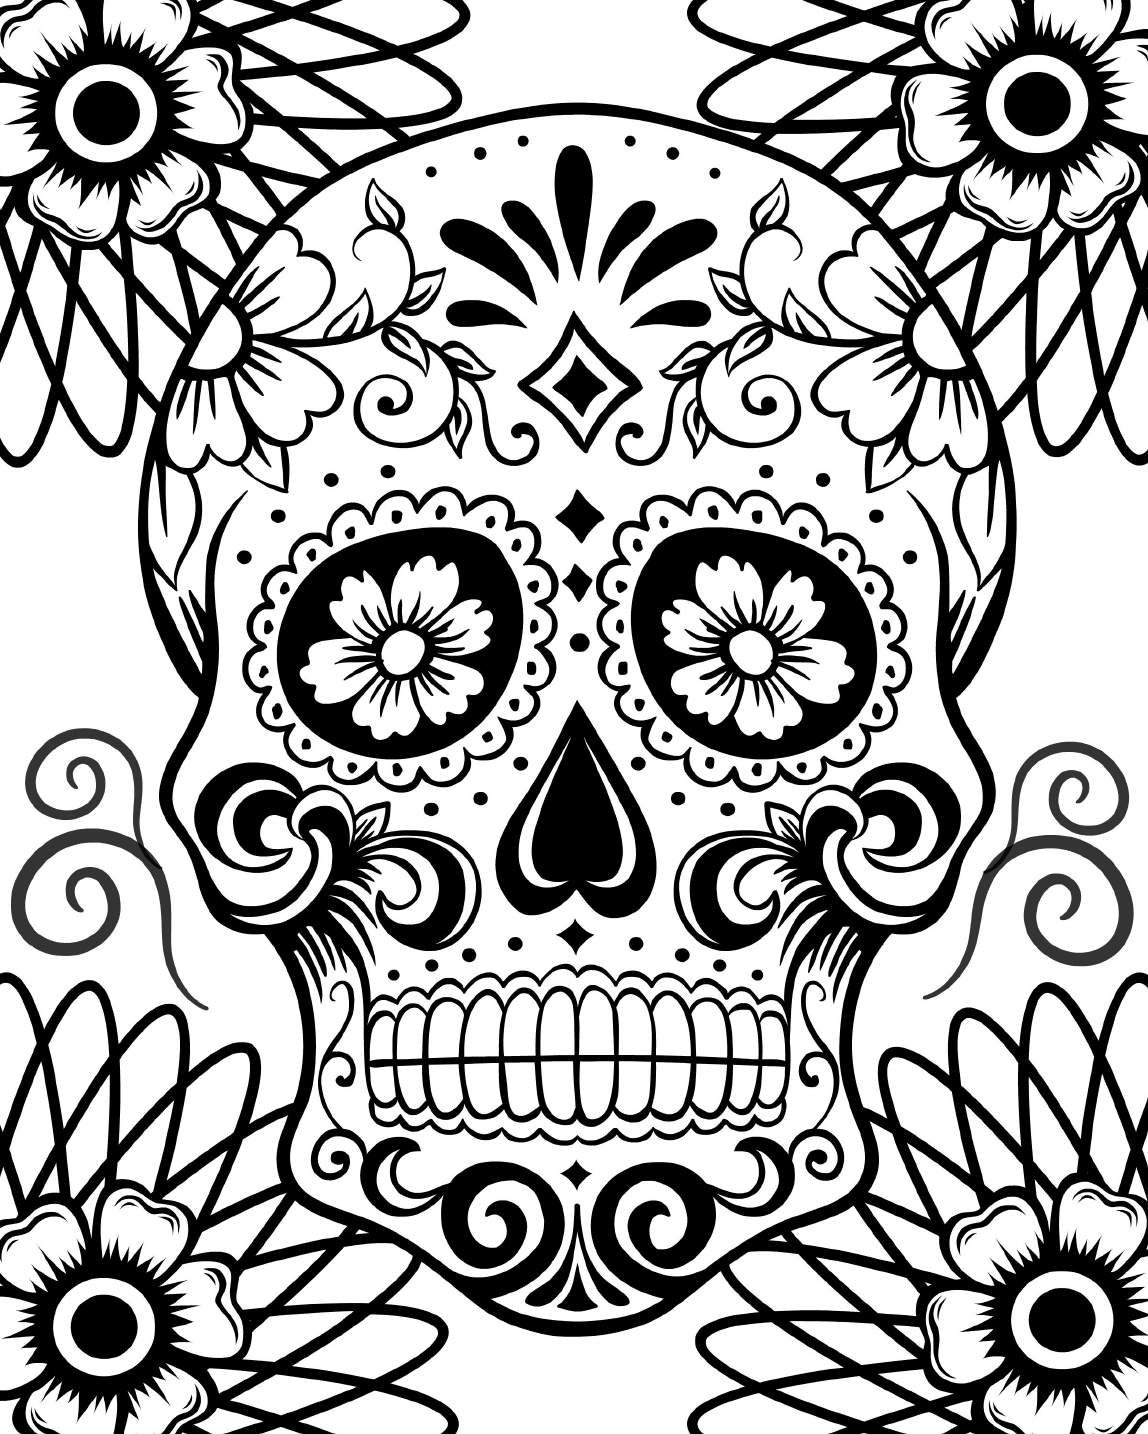 skulls for coloring day of the dead - Day Of The Dead Coloring Book